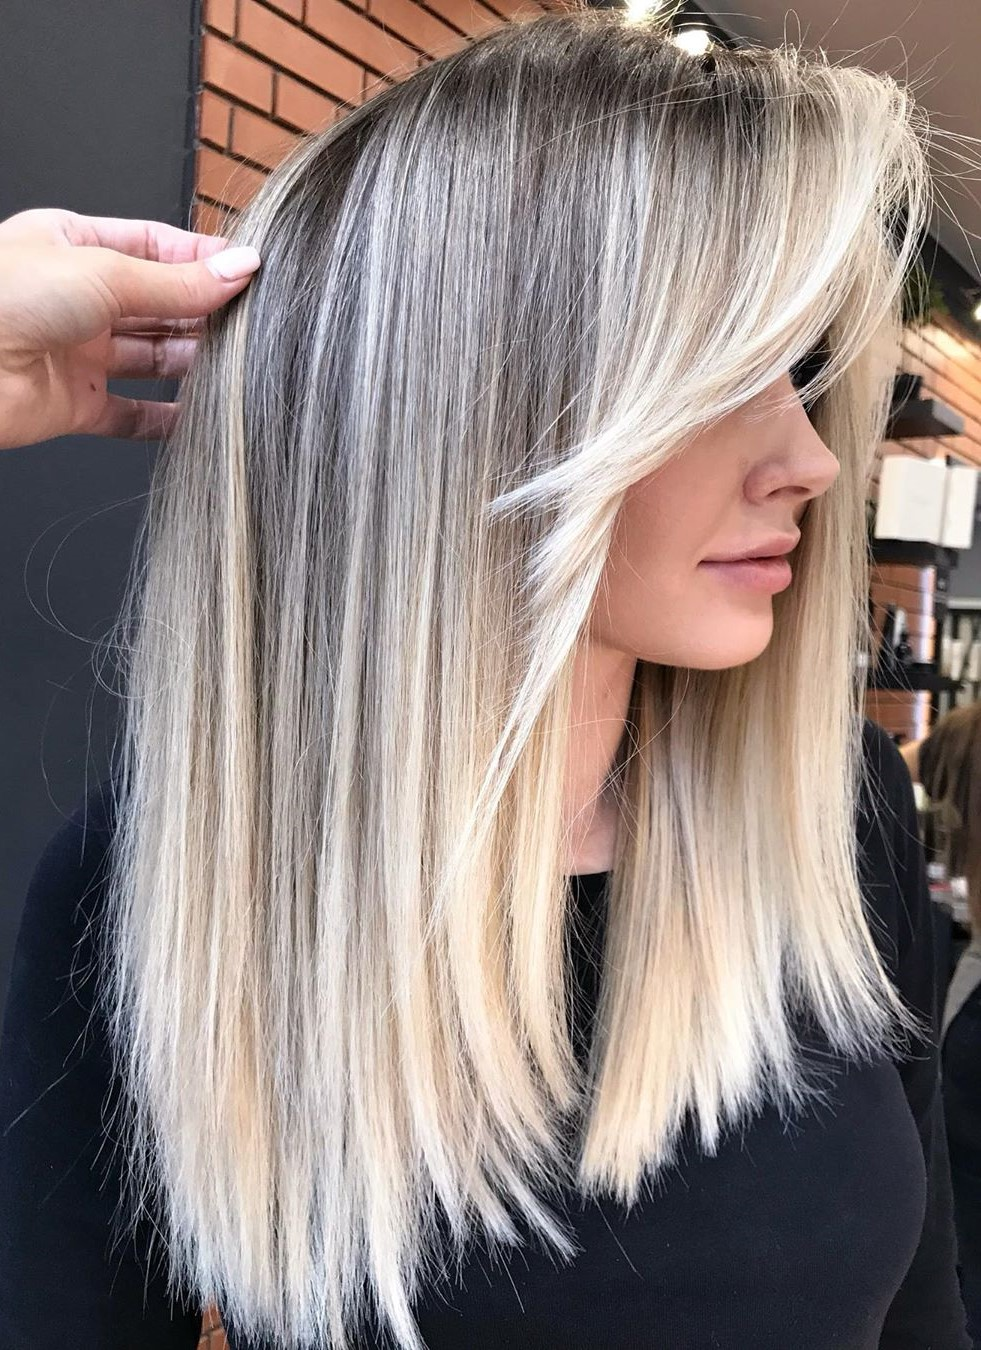 40 Best Ideas How to Cut and Style Side Bangs in 2020 - Hair Adviser